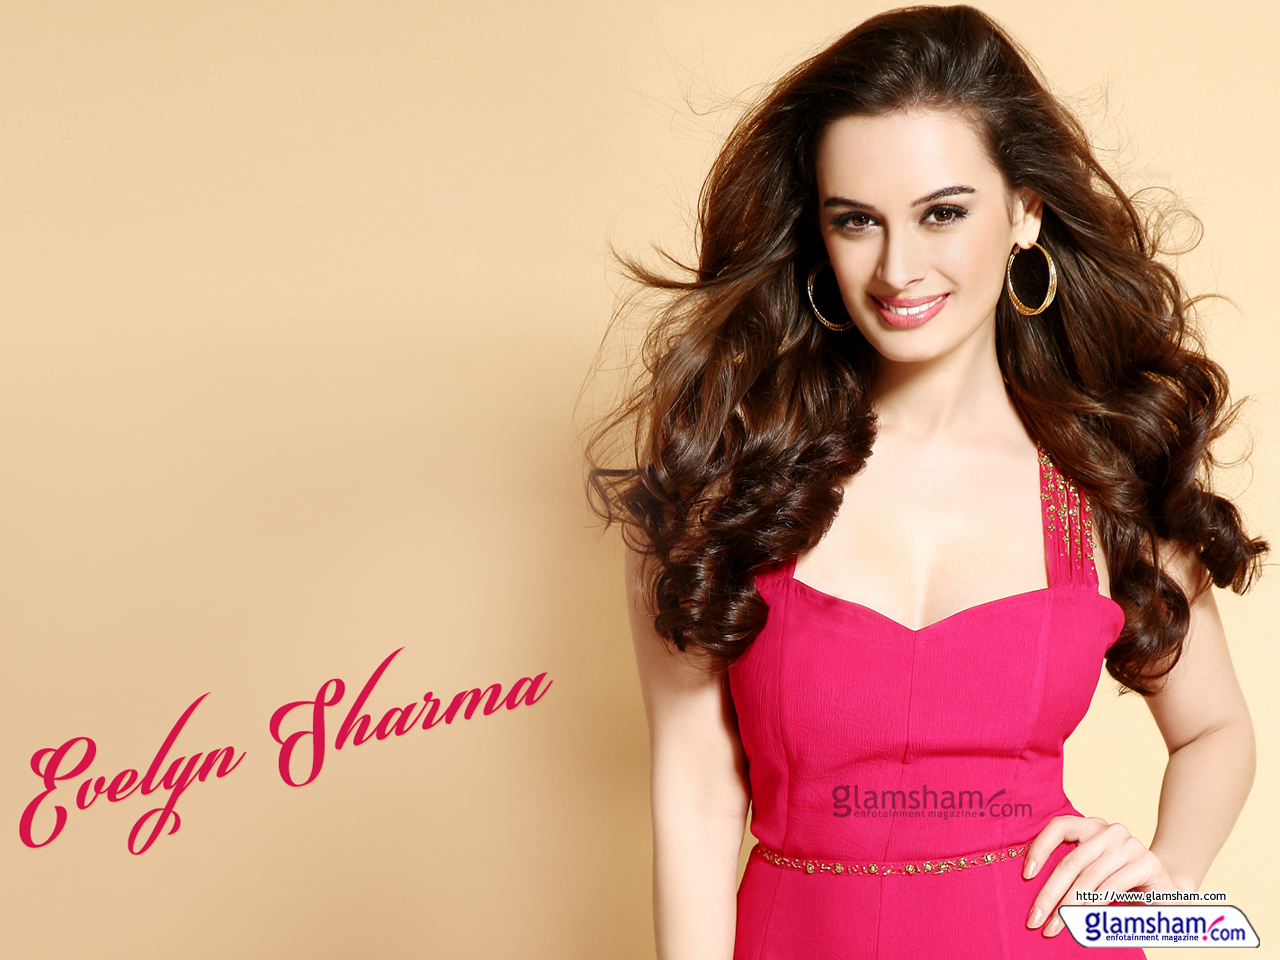 1280x960 - Evelyn Sharma Wallpapers 33